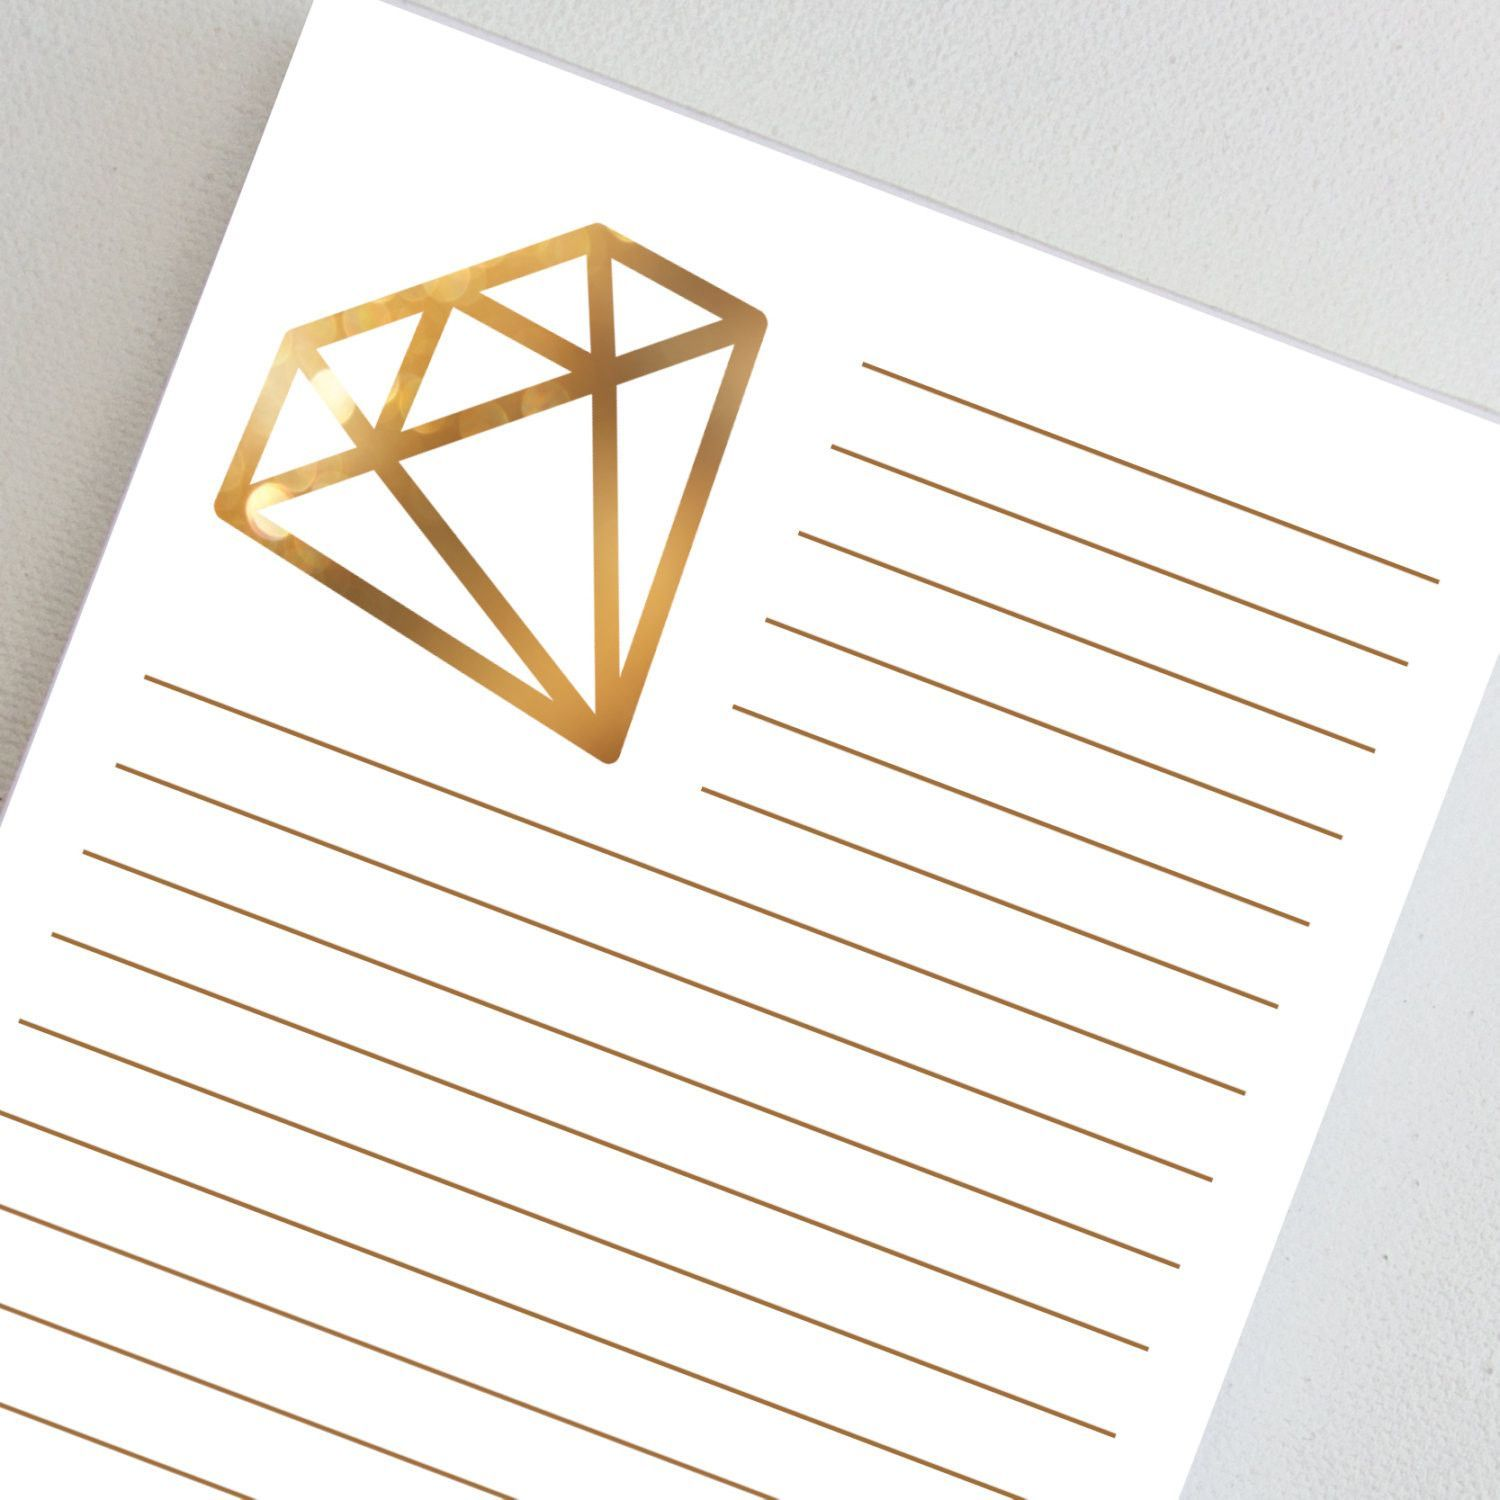 Gold color cardstock paper - Alpha Delta Pi Notepad Personalized Gold Colored Diamond Logo Lined Paper Note Pad Add